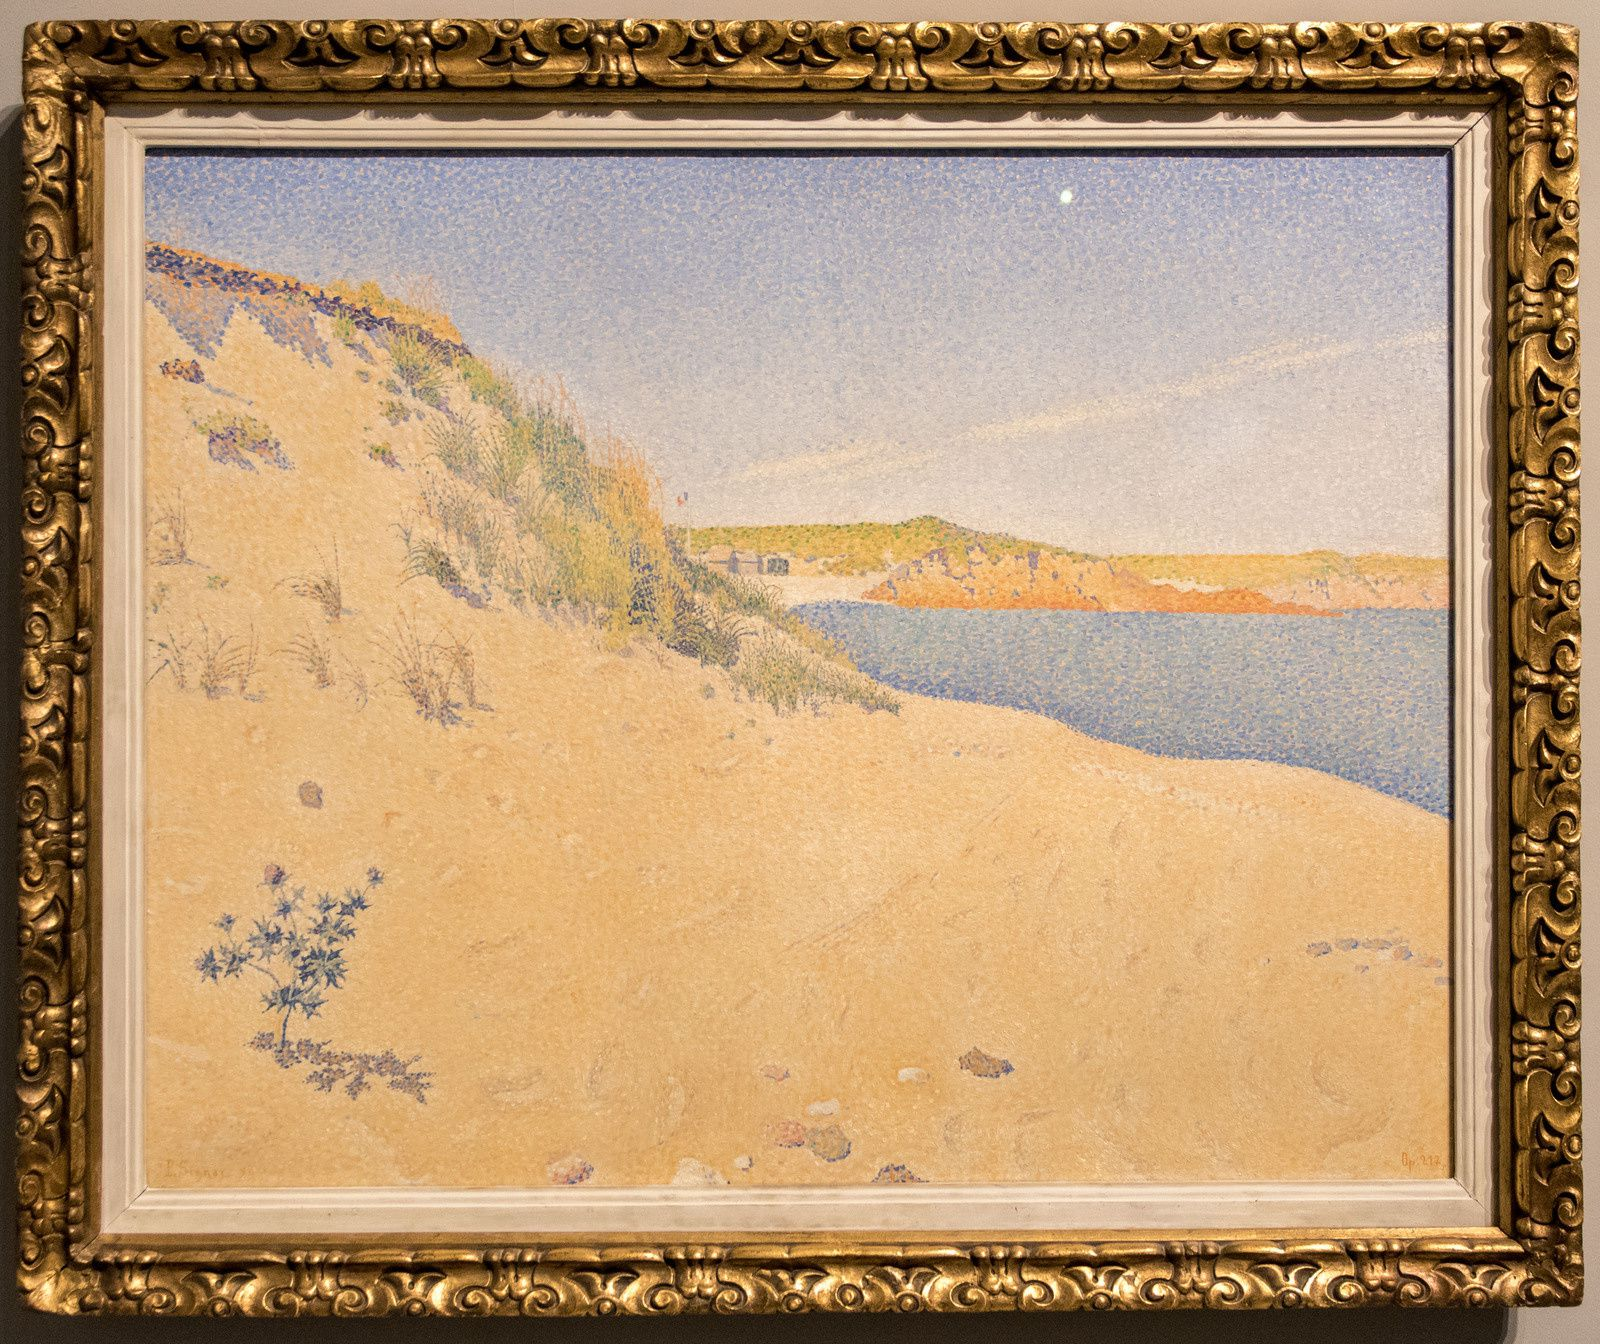 Dune (le port Hue) - 1890 - Paul Signac (1863-1935)